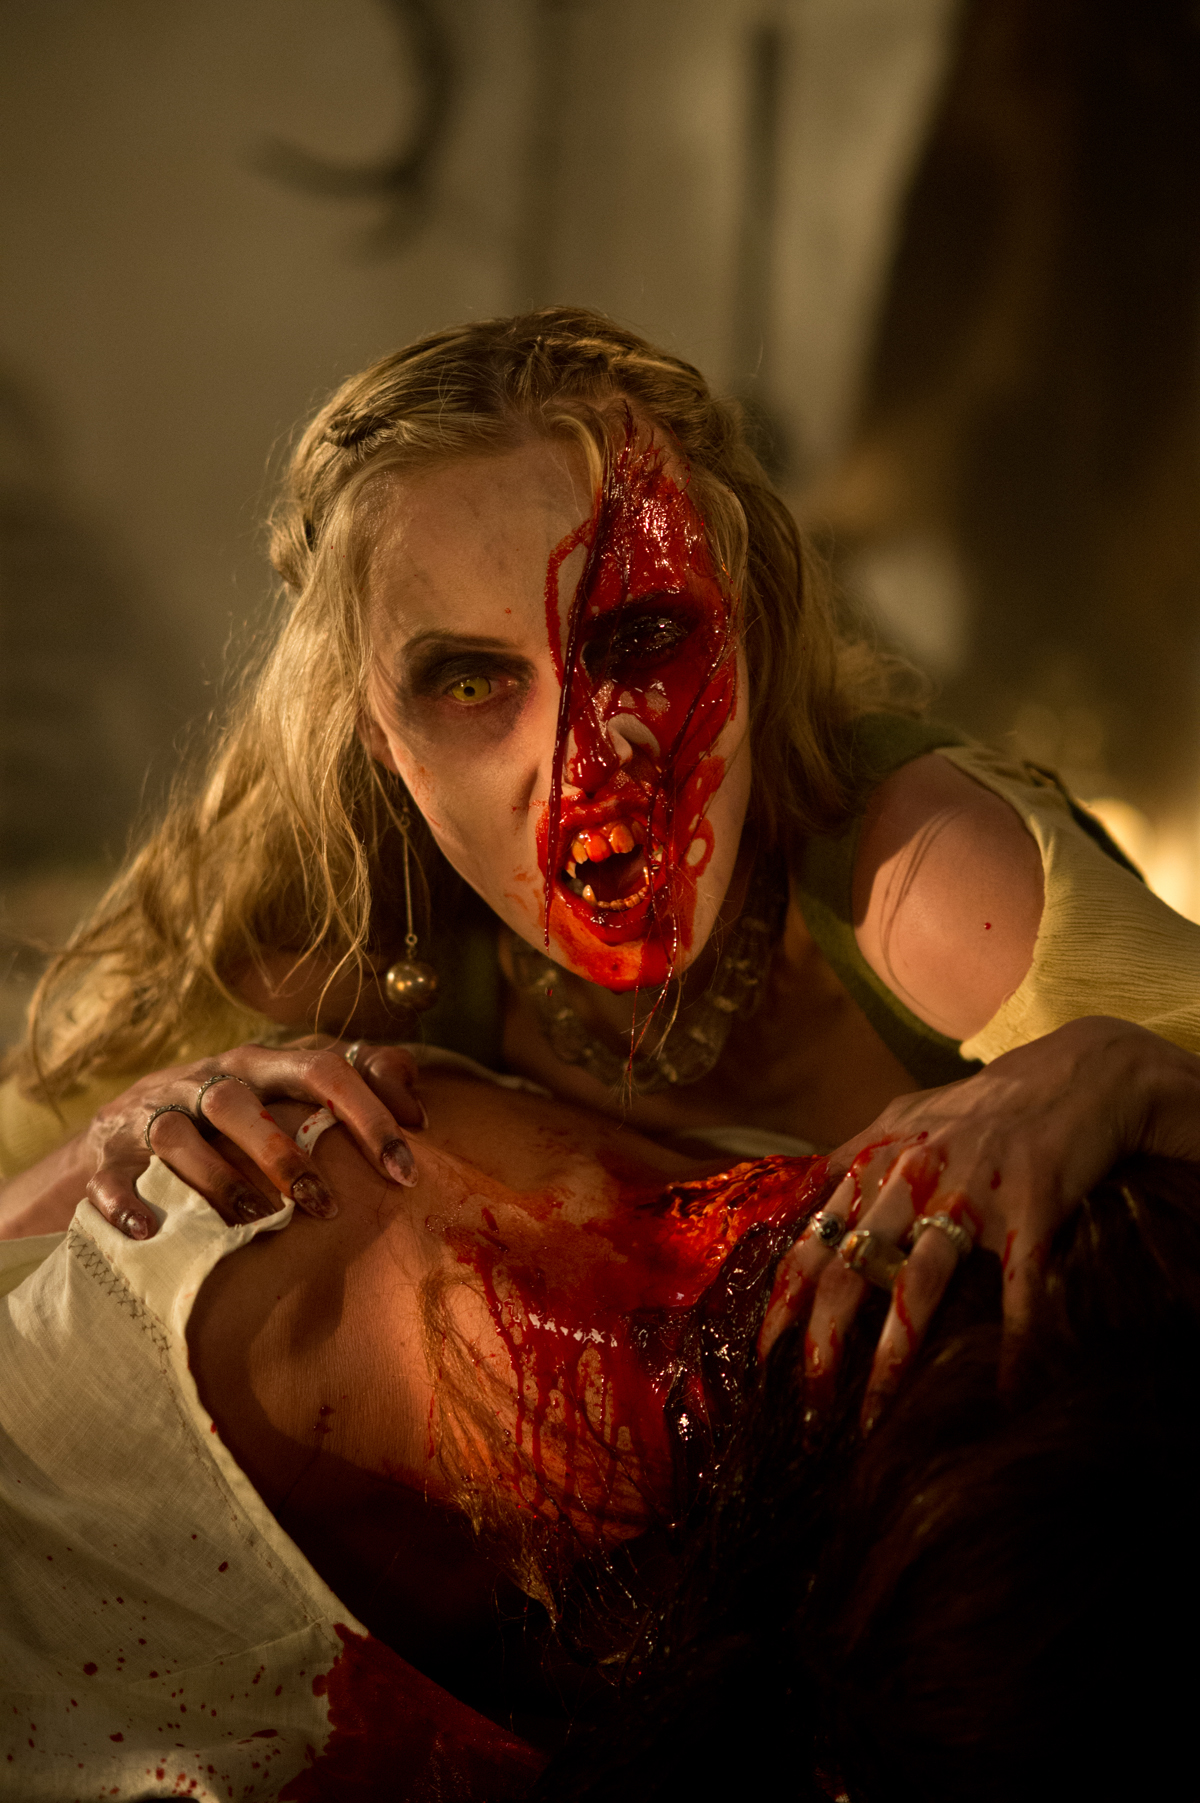 Erotic Clip From 'Embrace of the Vampire' Ends In Vicious ...